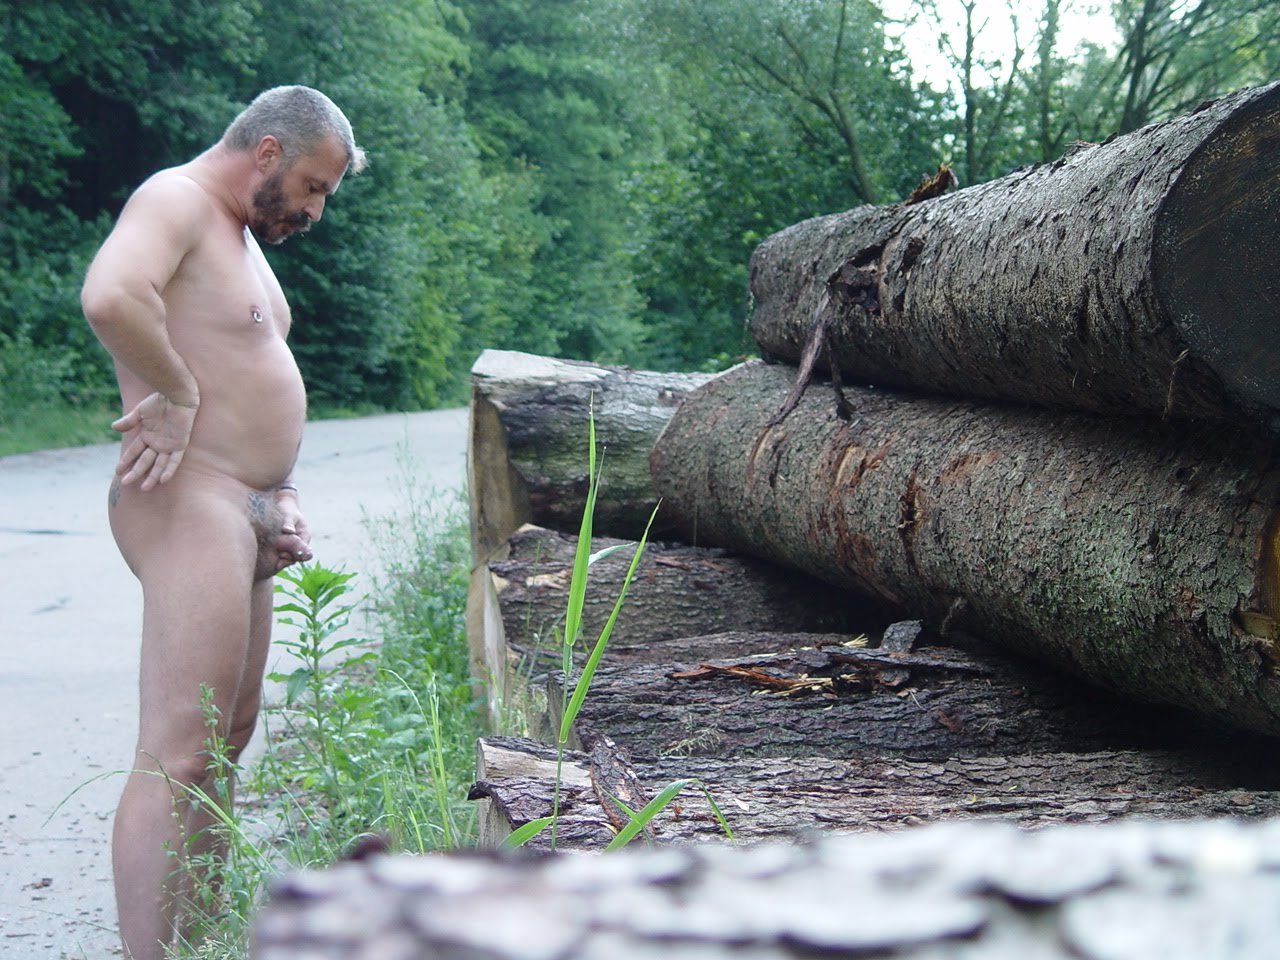 The Naked male truckers pissing share